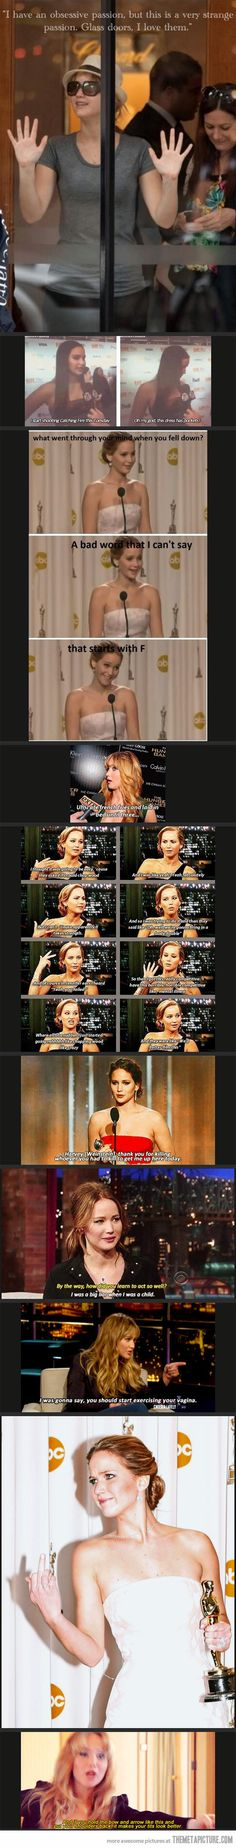 Oh, Jennifer Lawrence. I love her!